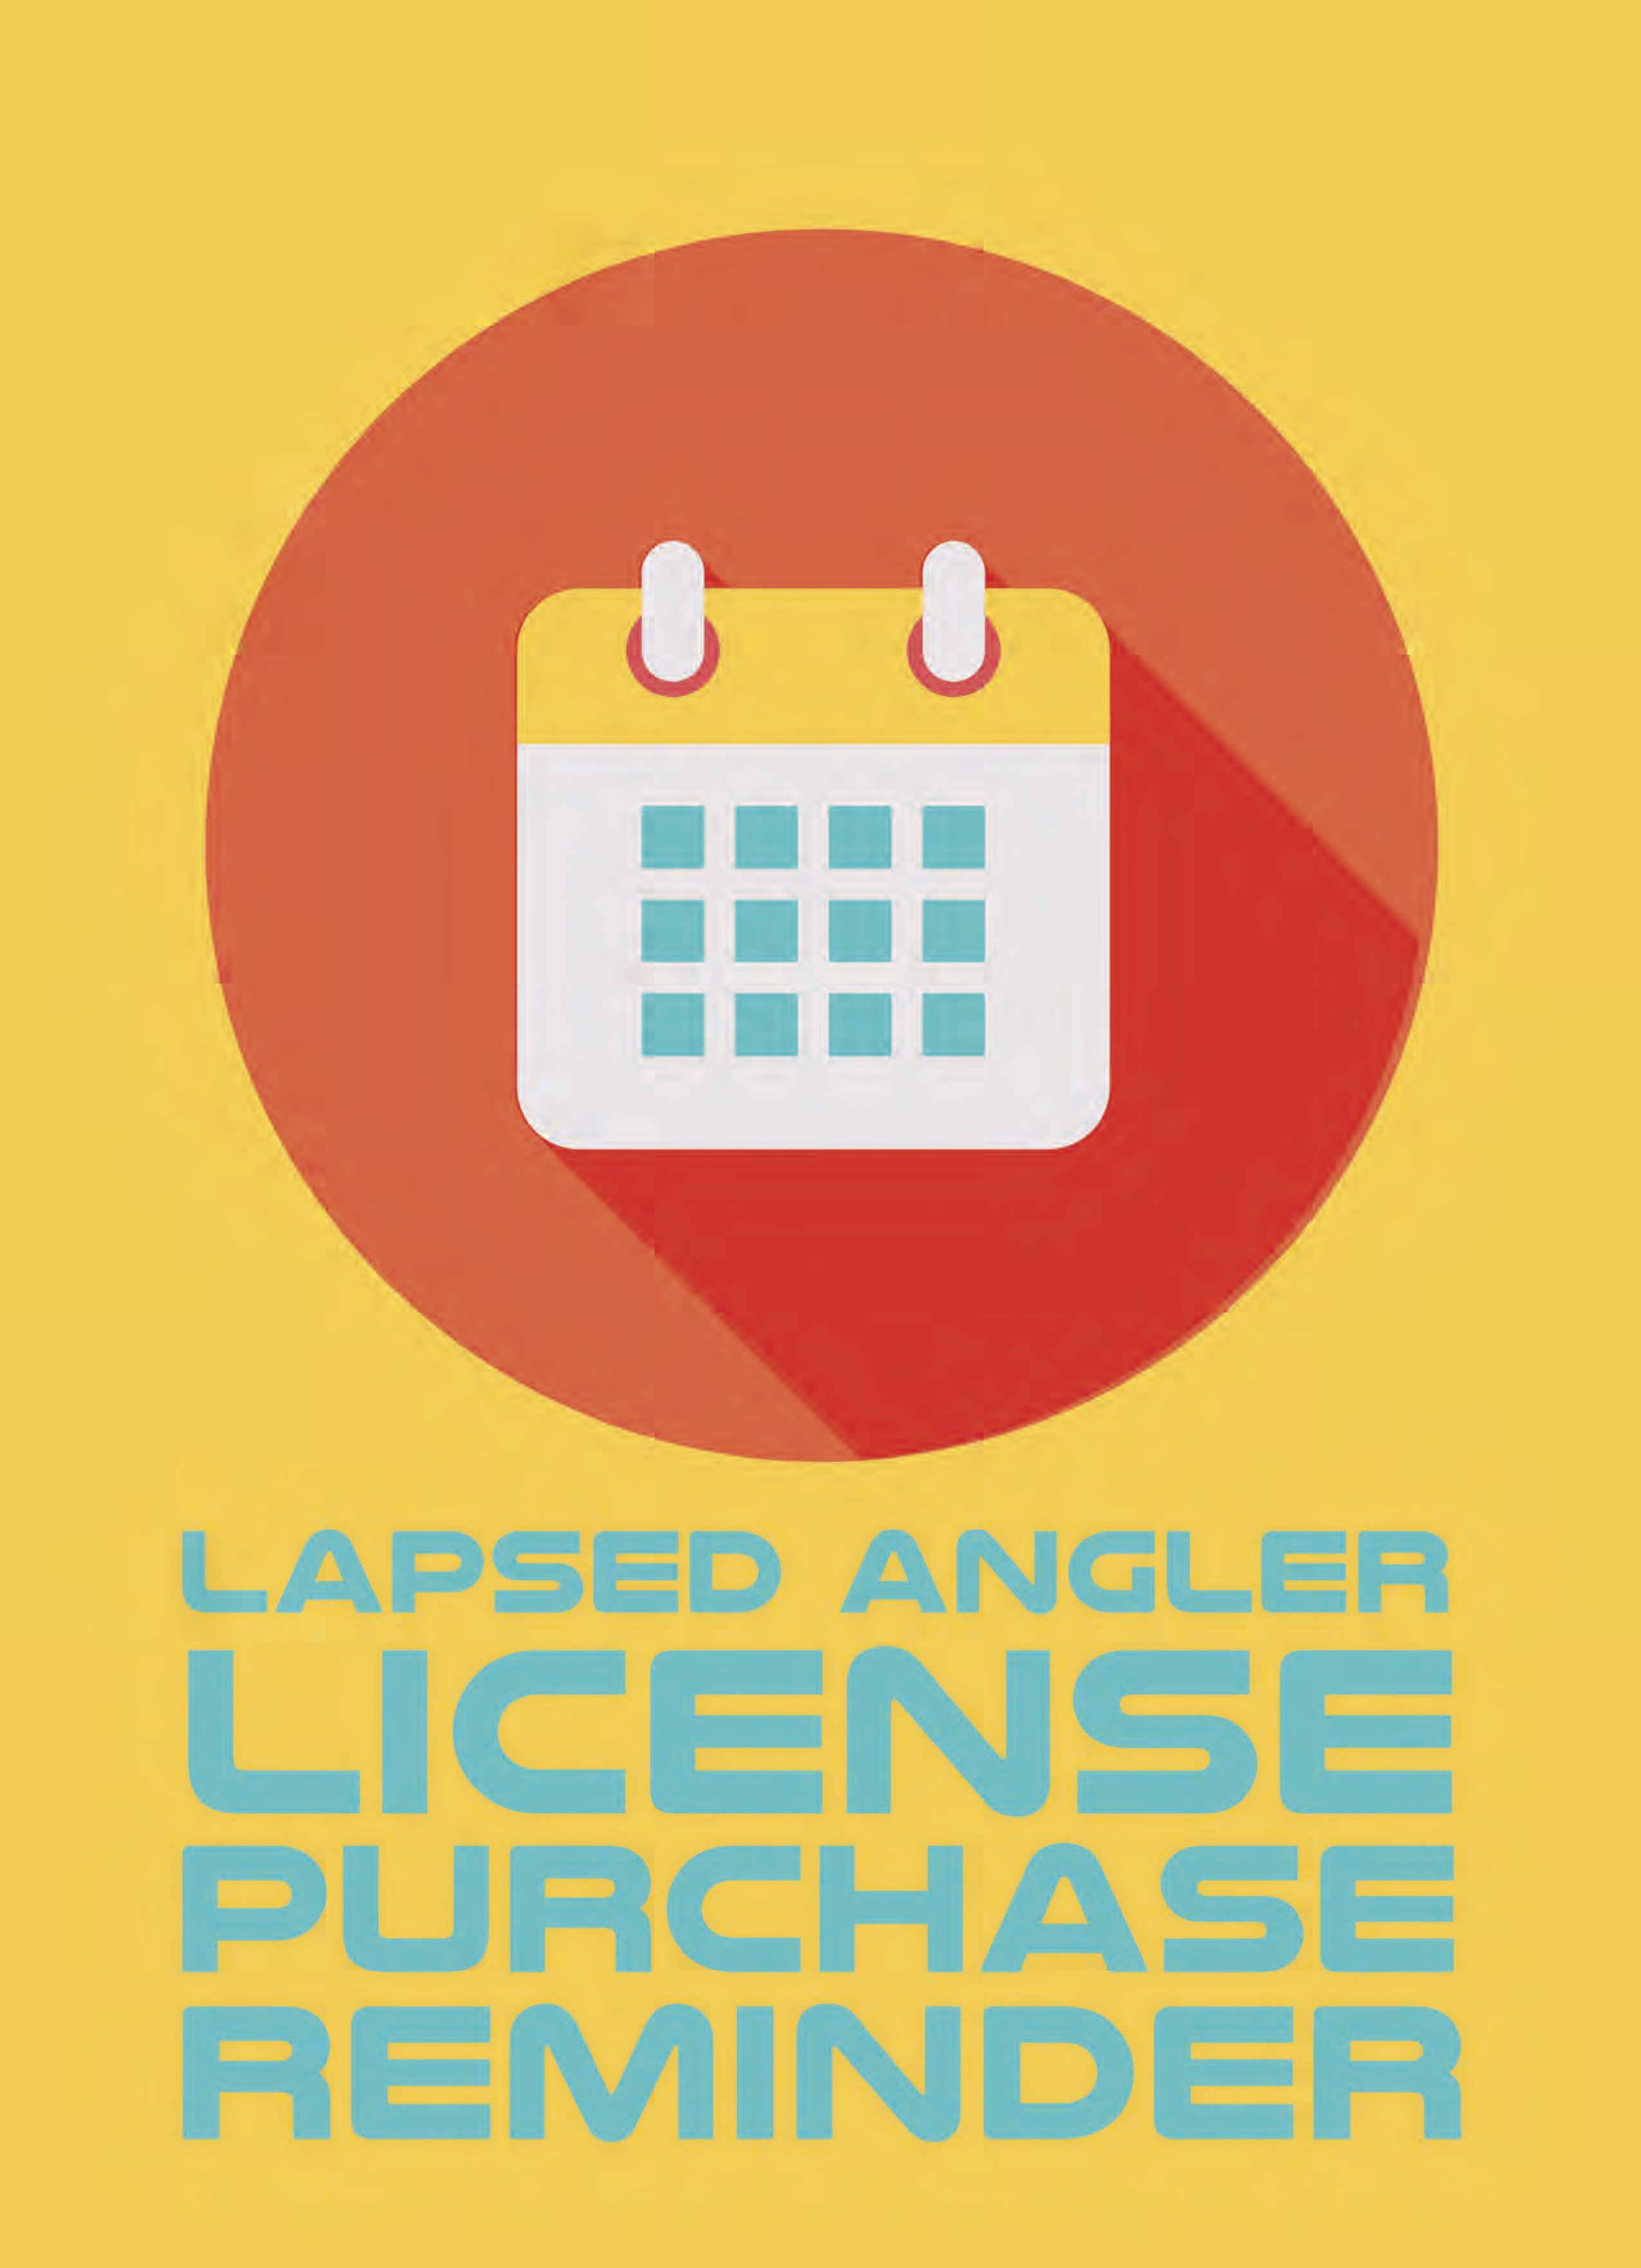 Lapsed Angler License Purchase Reminder